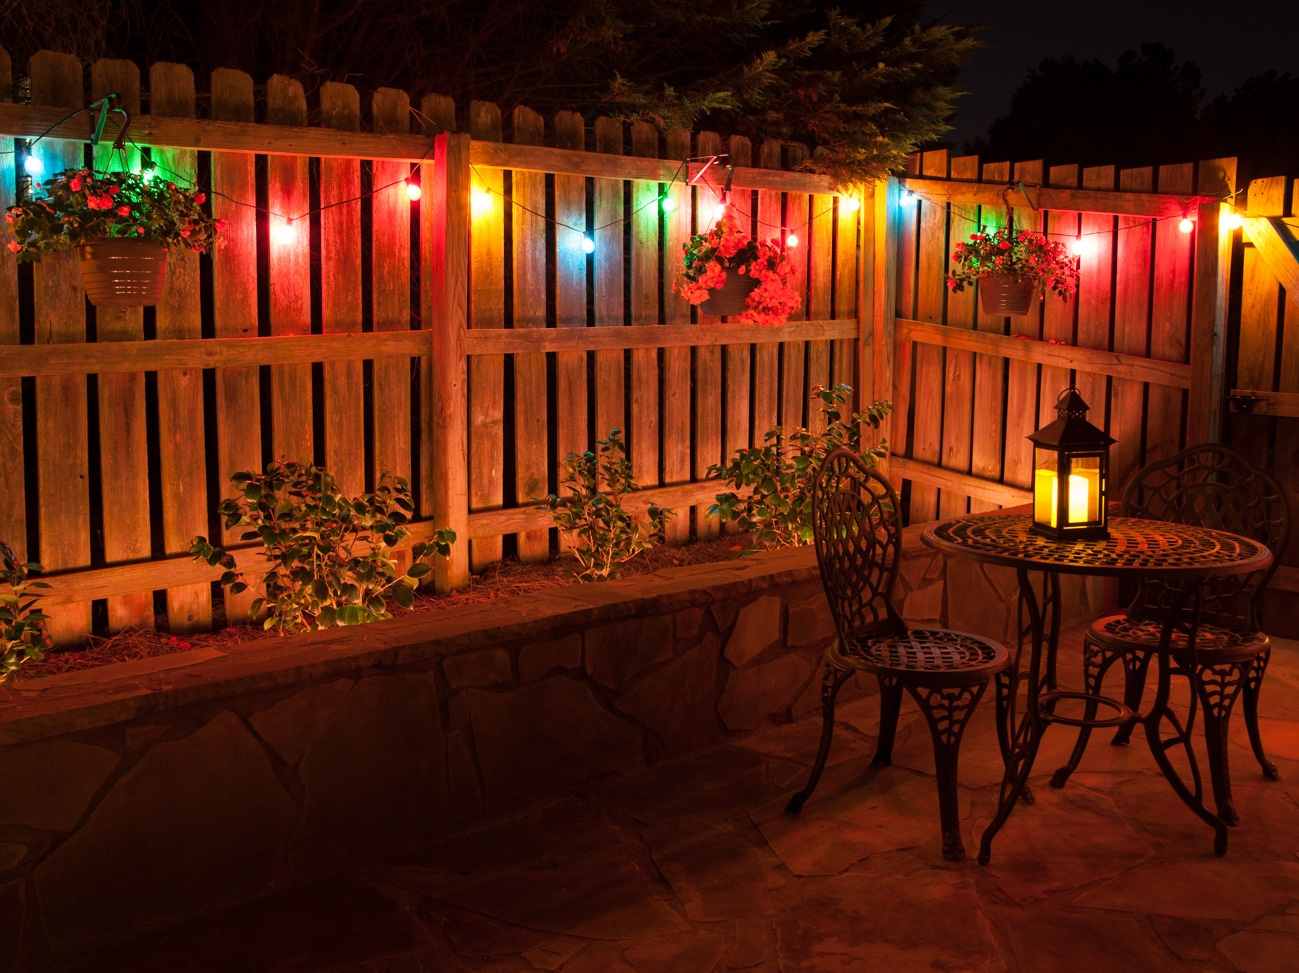 Gallery from Outdoor Lights On Fence Resources @house2homegoods.net